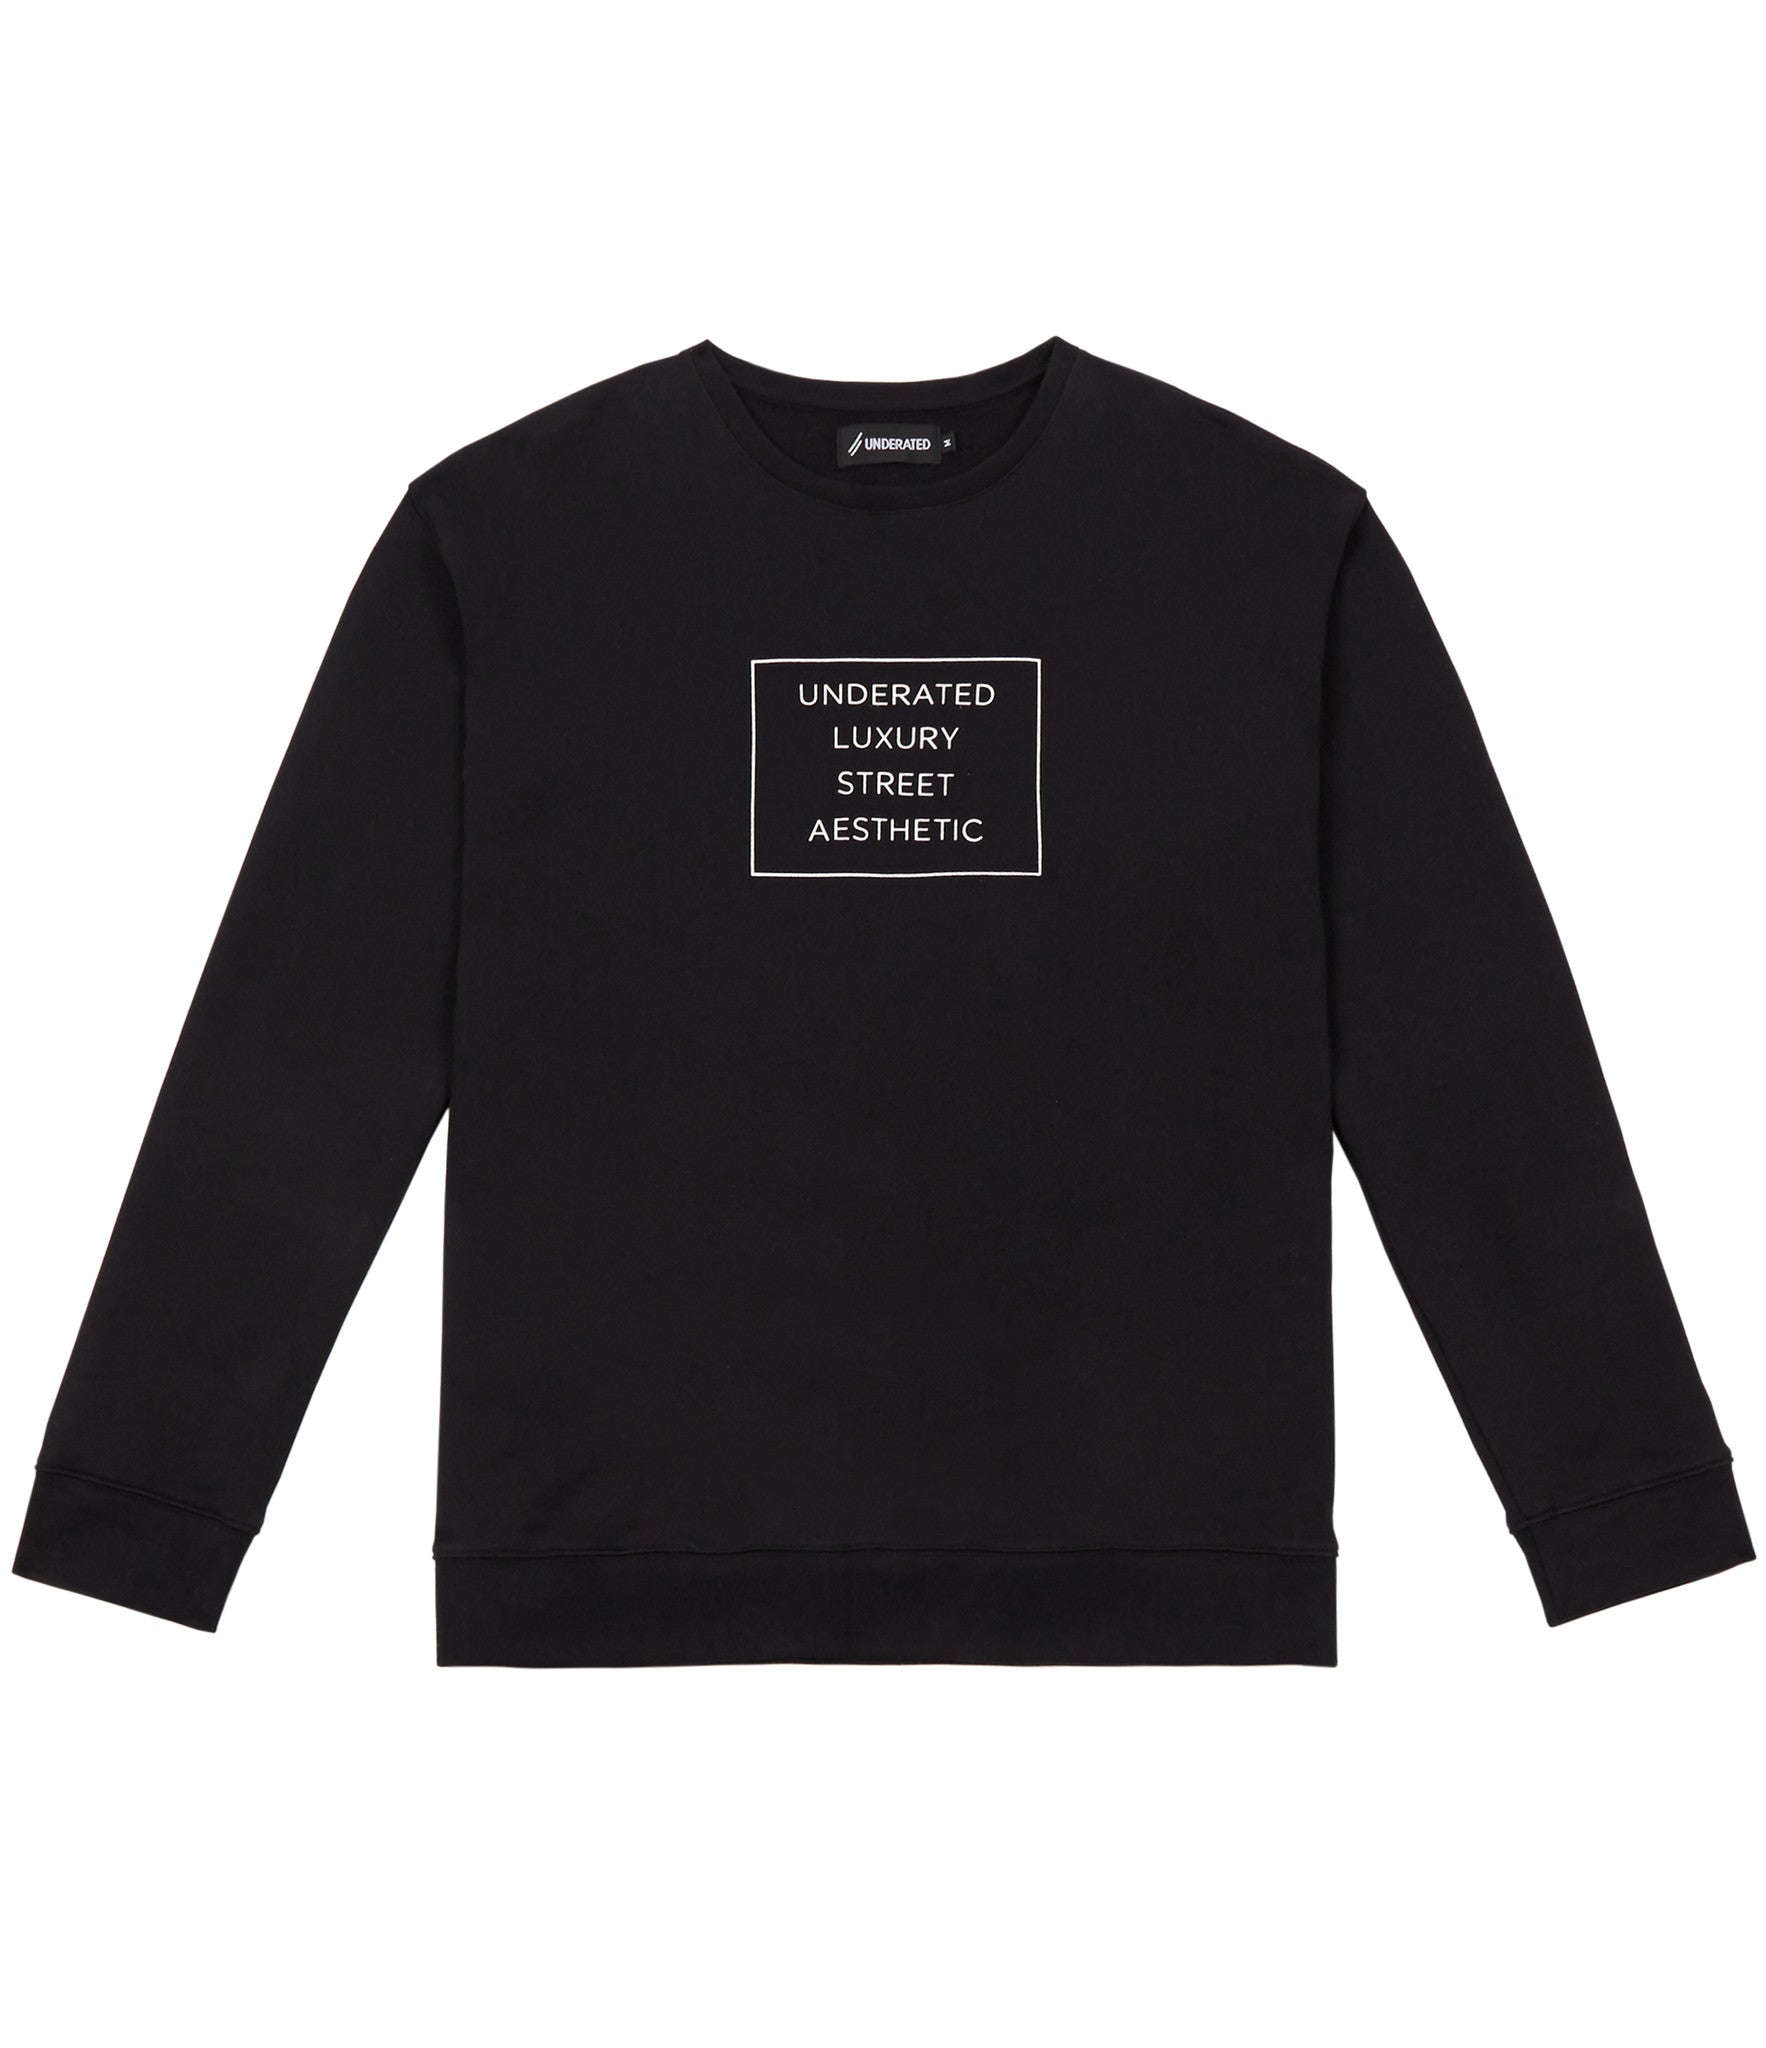 SW314 Box Logo Printed Sweatshirt - Black - underated london - underatedco - 1